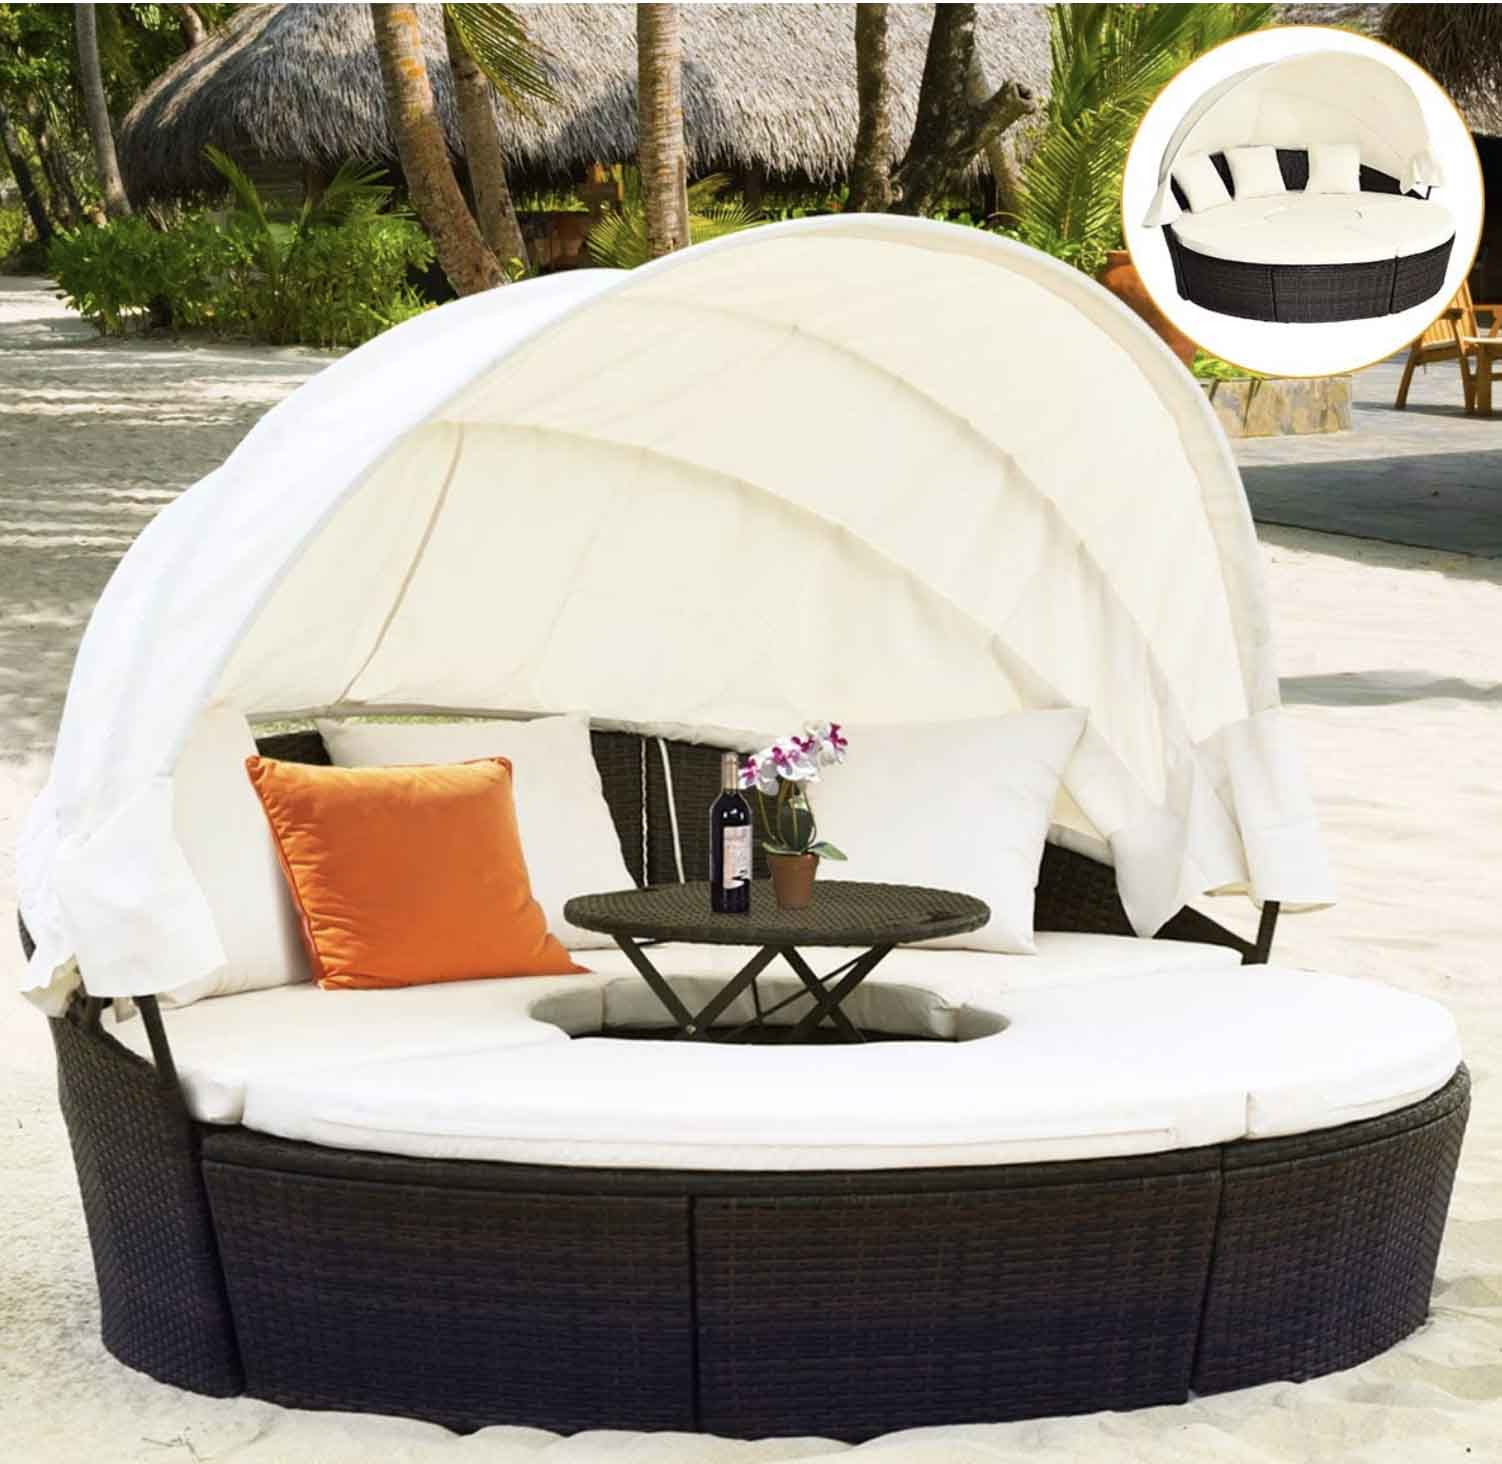 20 Gorgeous Outdoor Daybeds For Your Patio and Backyard ... on Belham Living Brighton Outdoor Daybed id=44896